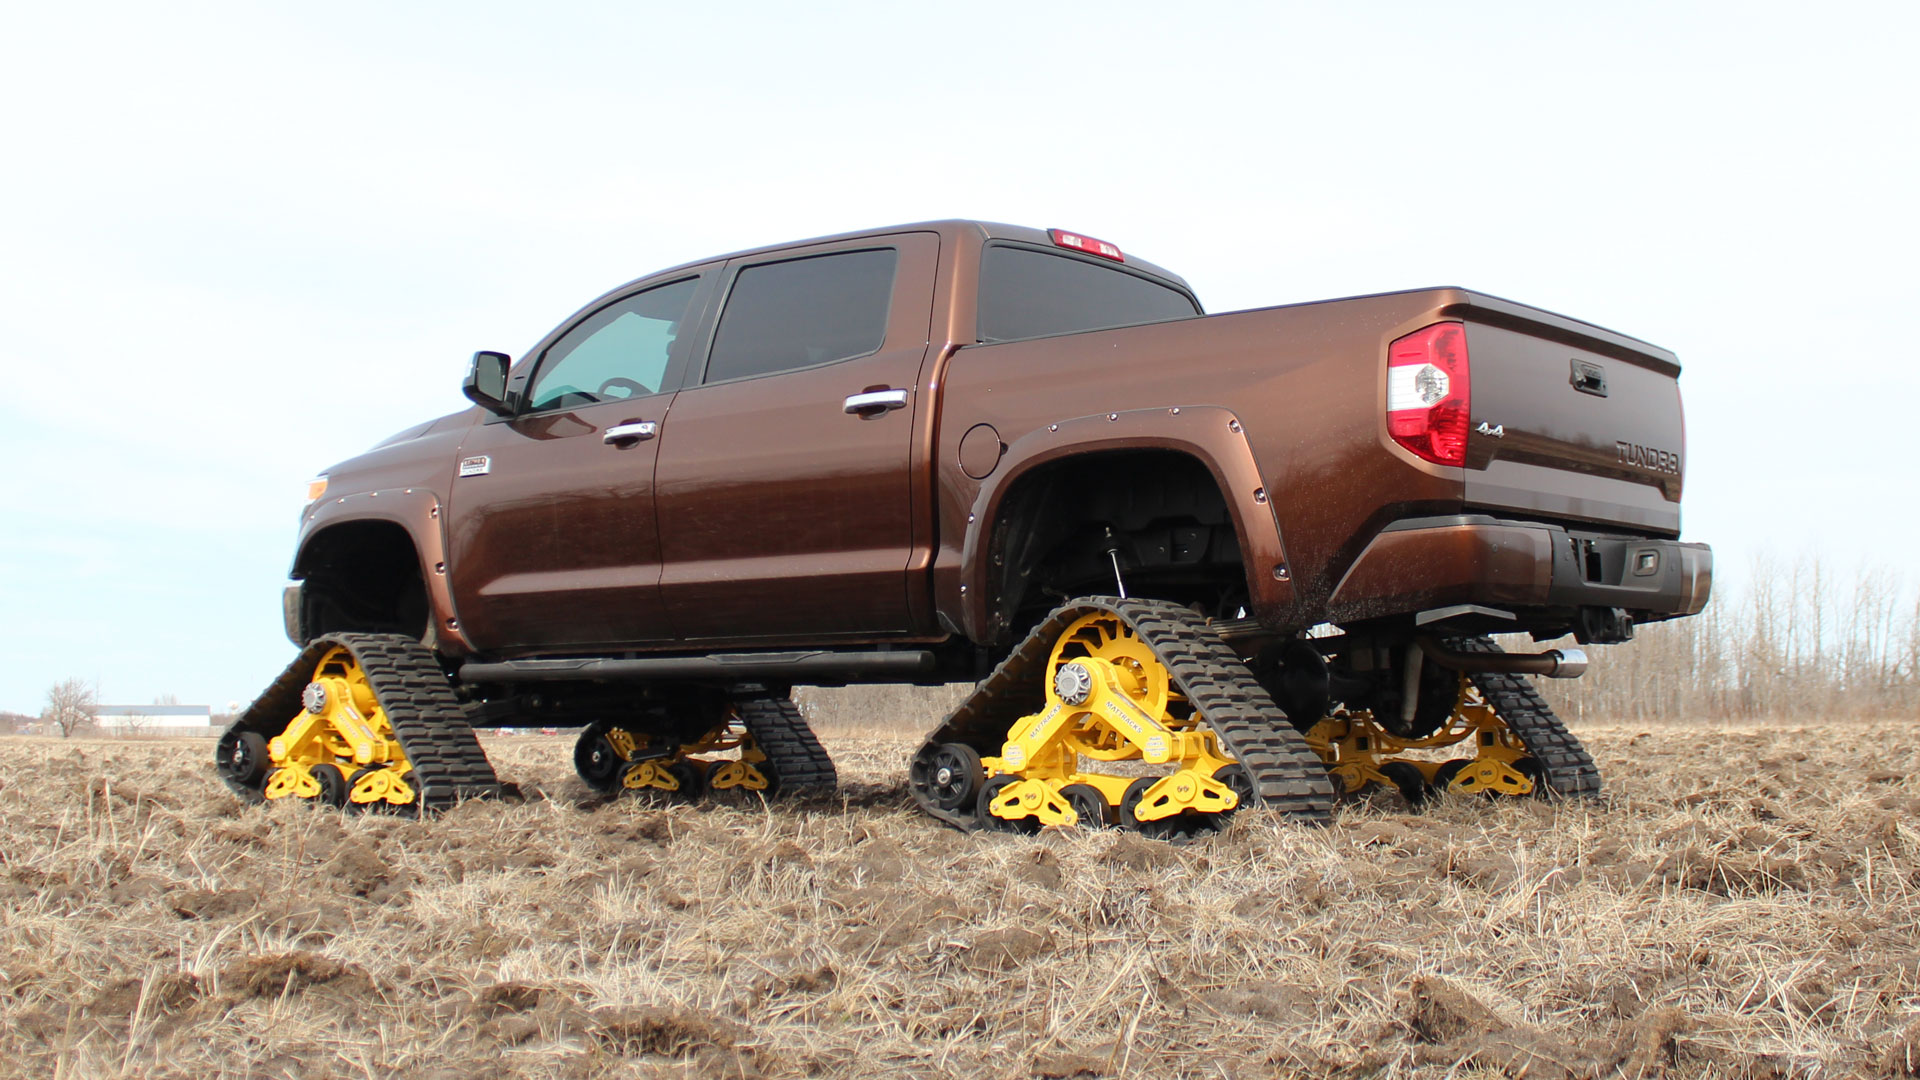 105 Tracks on a Toyota Tundra